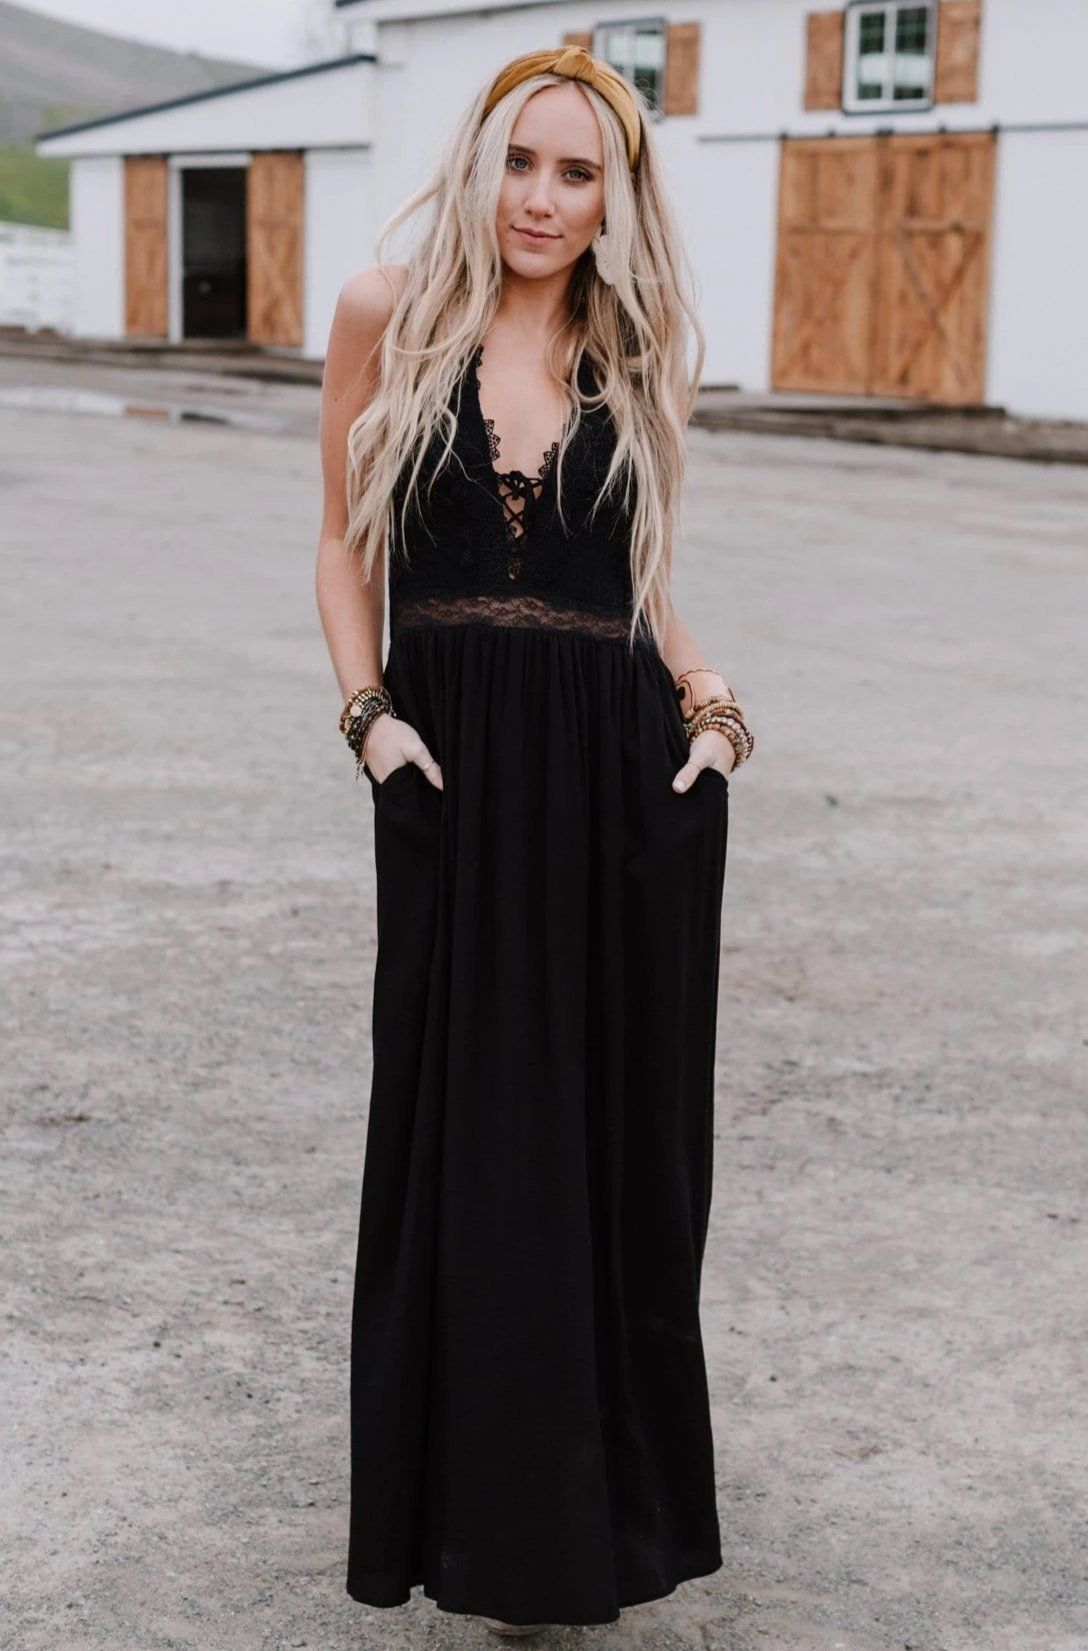 Embroidered Lace Halter Plunge Neck Maxi Dress Super Comfortable With A Stretchy Smocked Back And Is Fully Lined Maxi Dress Black Maxi Dress Lace Maxi Romper [ 1651 x 1088 Pixel ]